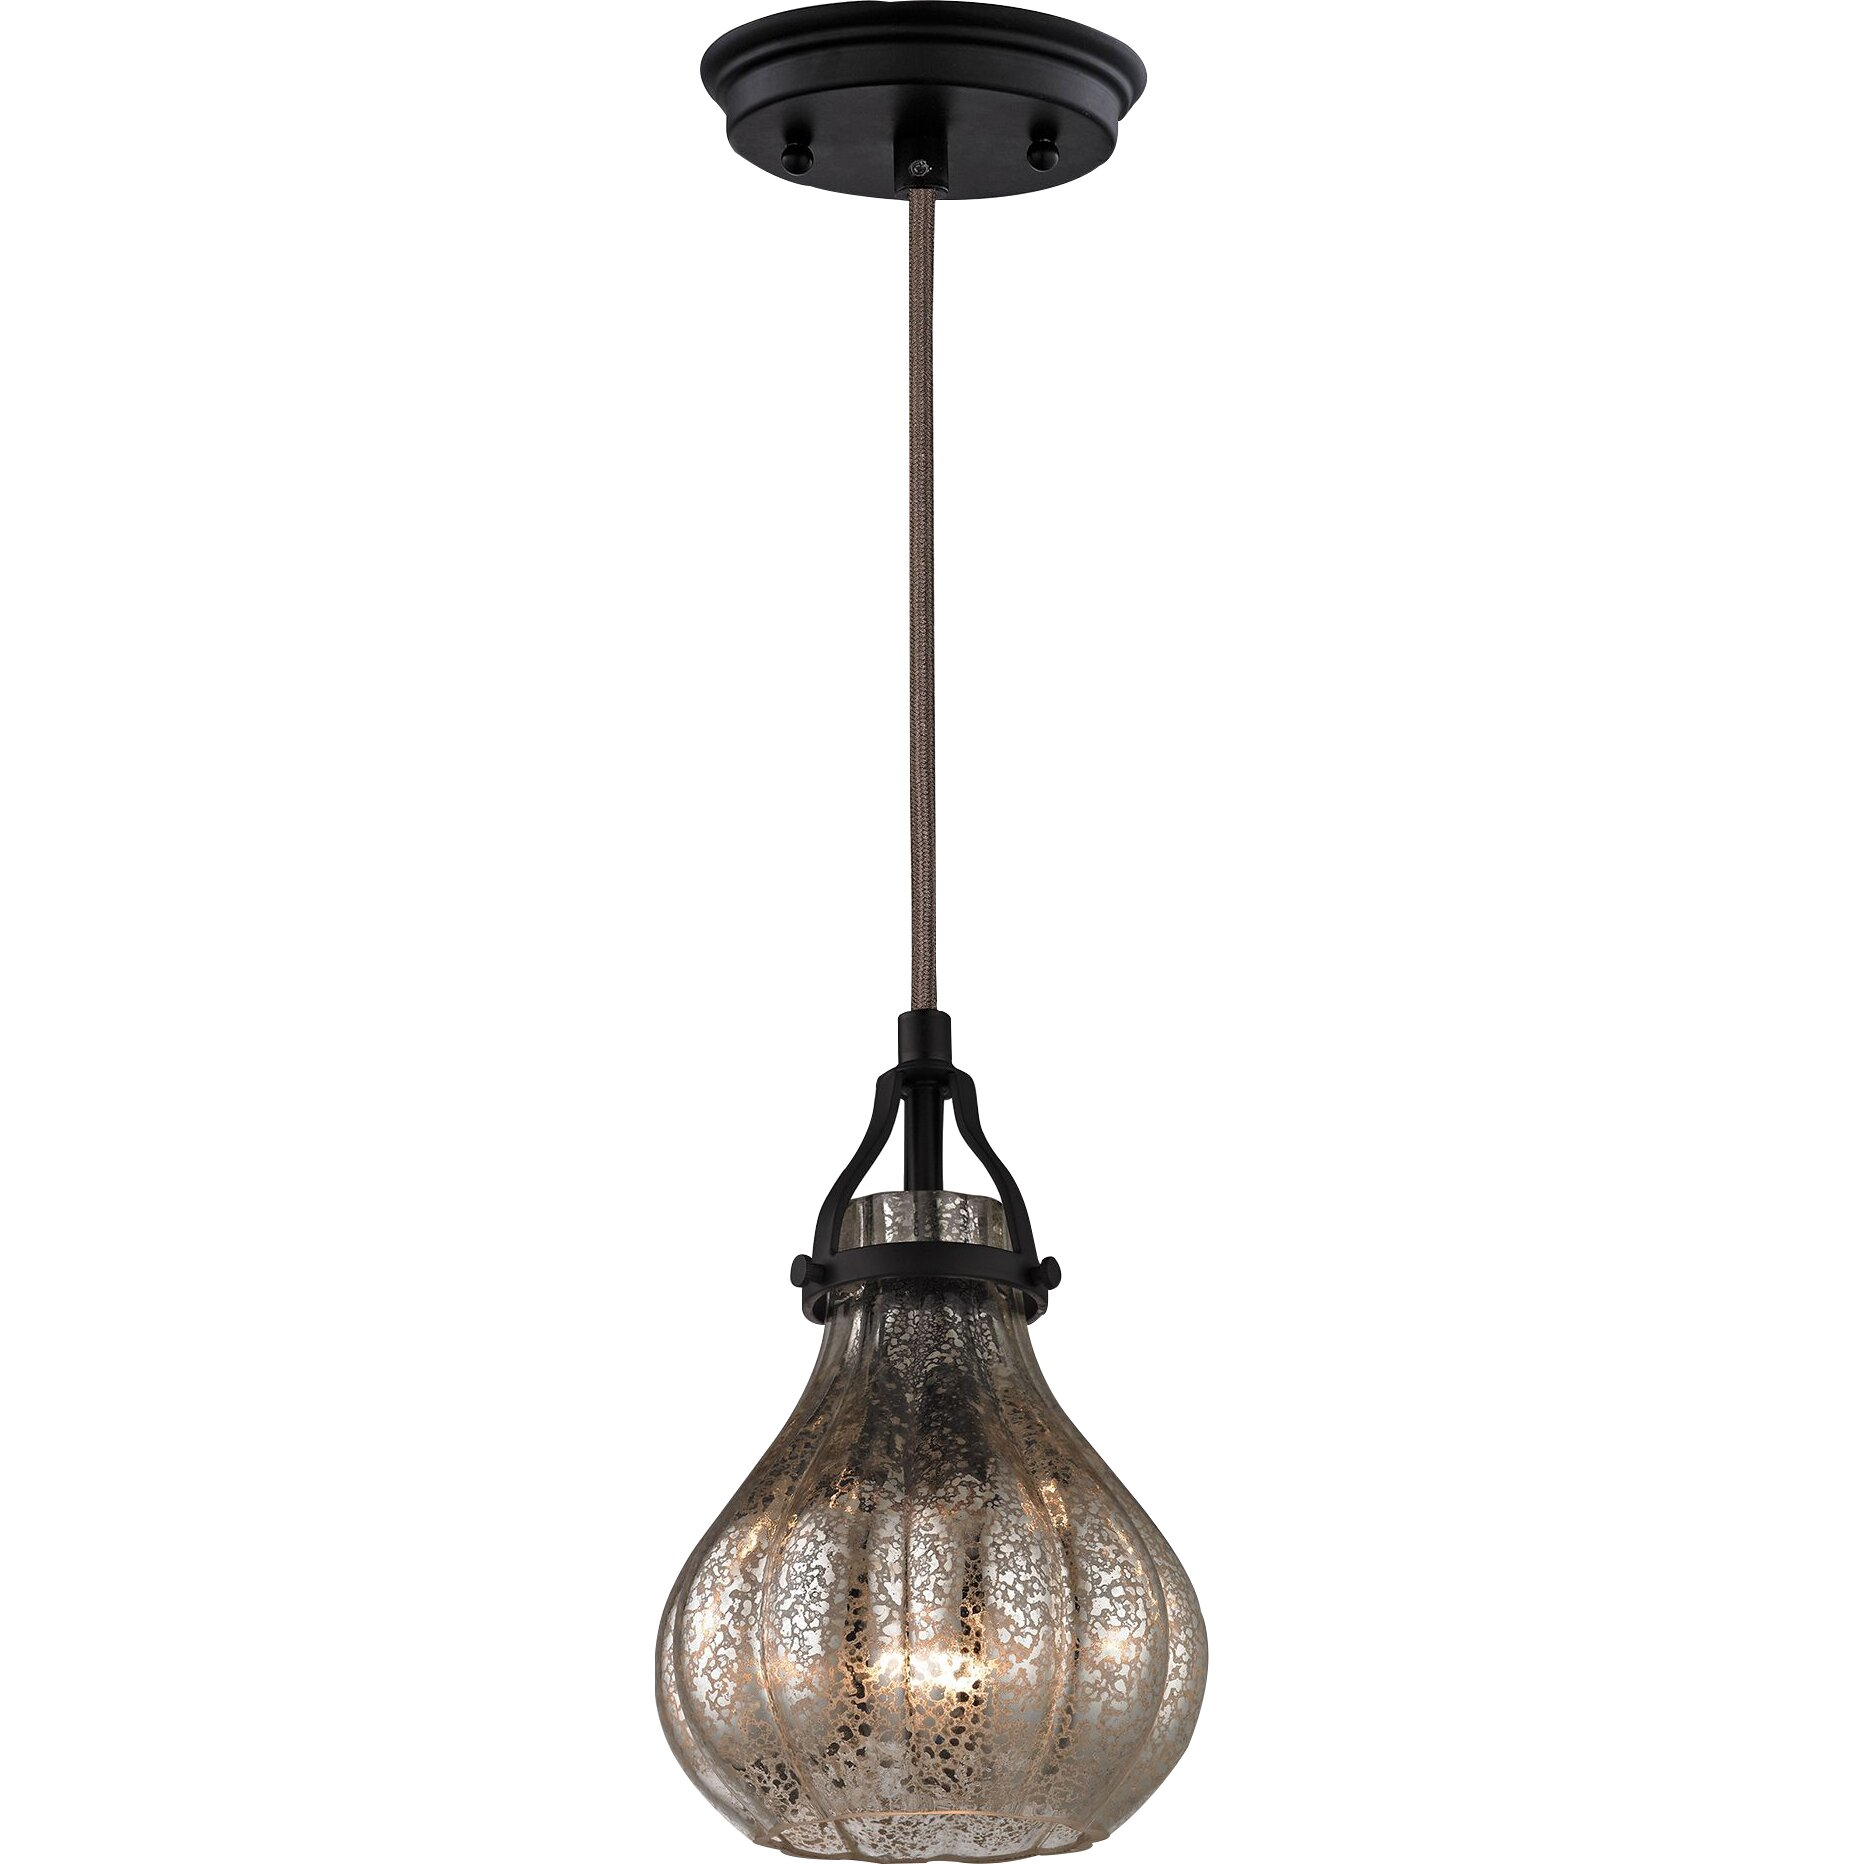 Elk Lighting Modern Farmhouse: Laurel Foundry Modern Farmhouse Orofino 1-Light Mini